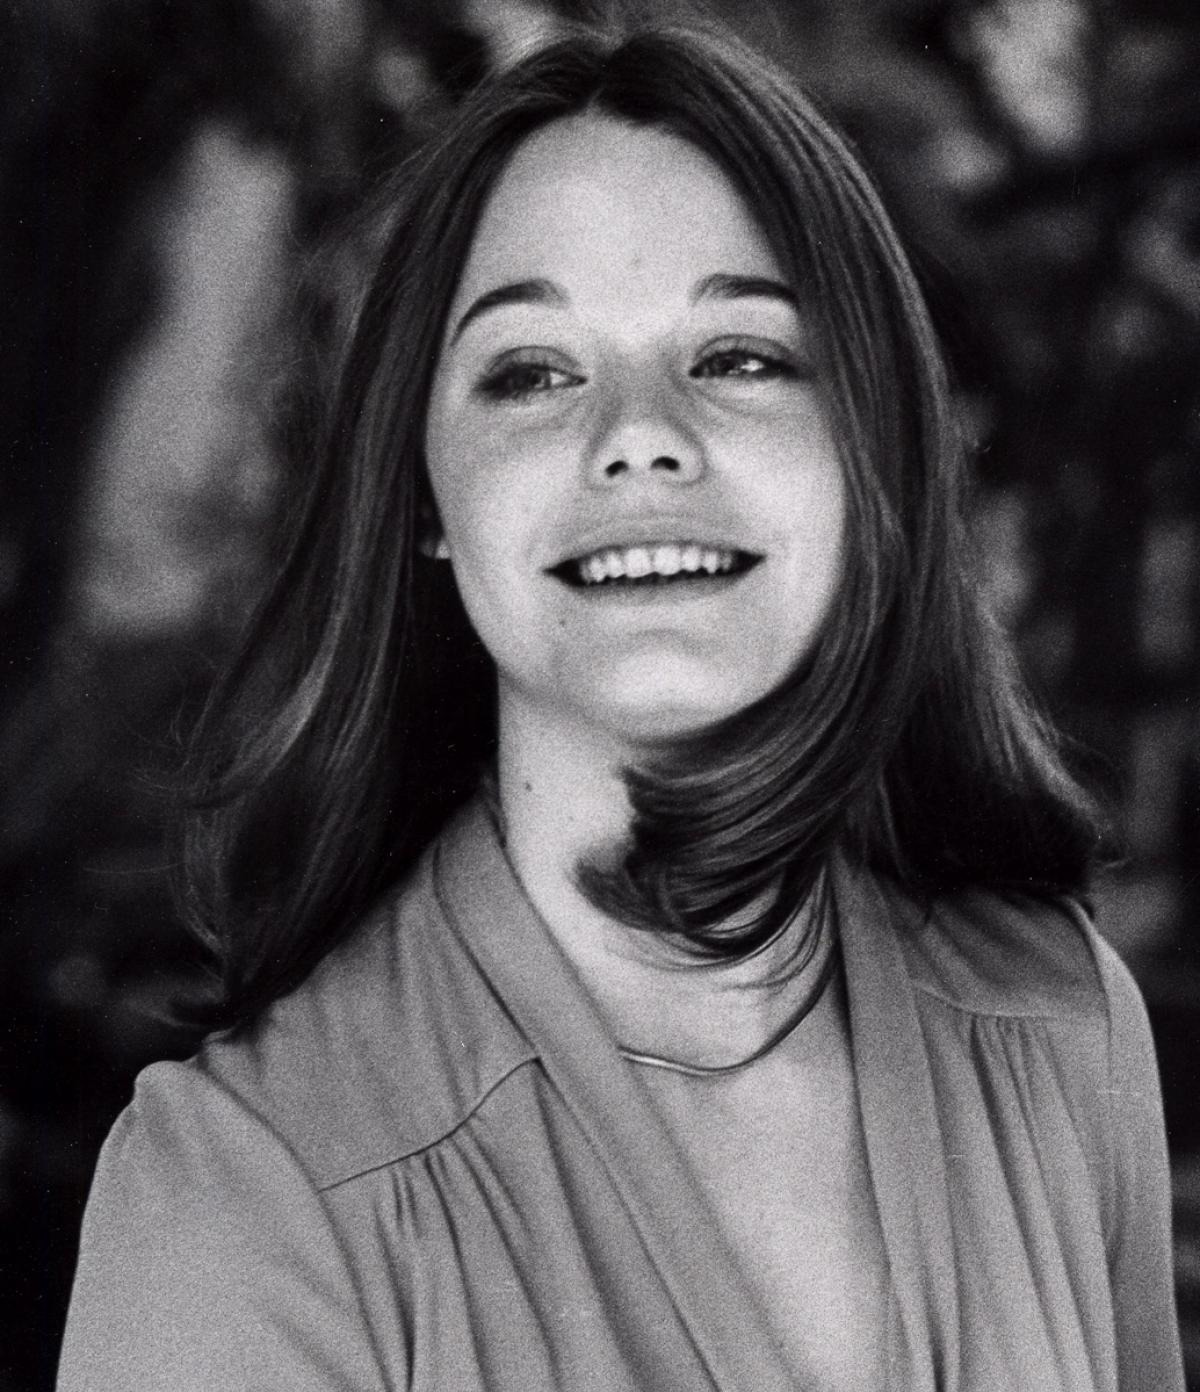 Susan Dey at her young age. She looks beautiful with short hair.